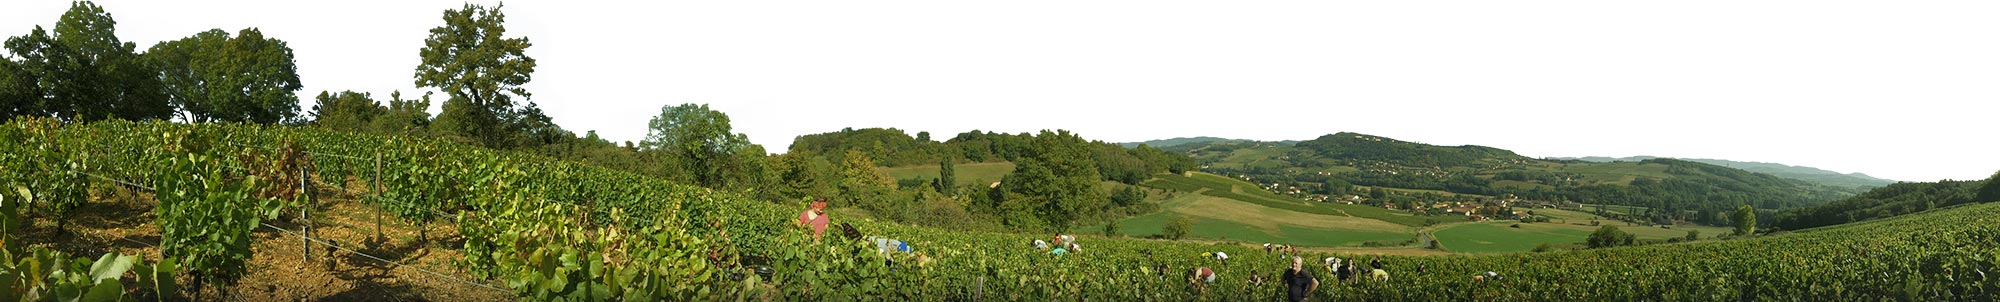 Photo du Domaine Chasselay, vins du Beaujolais